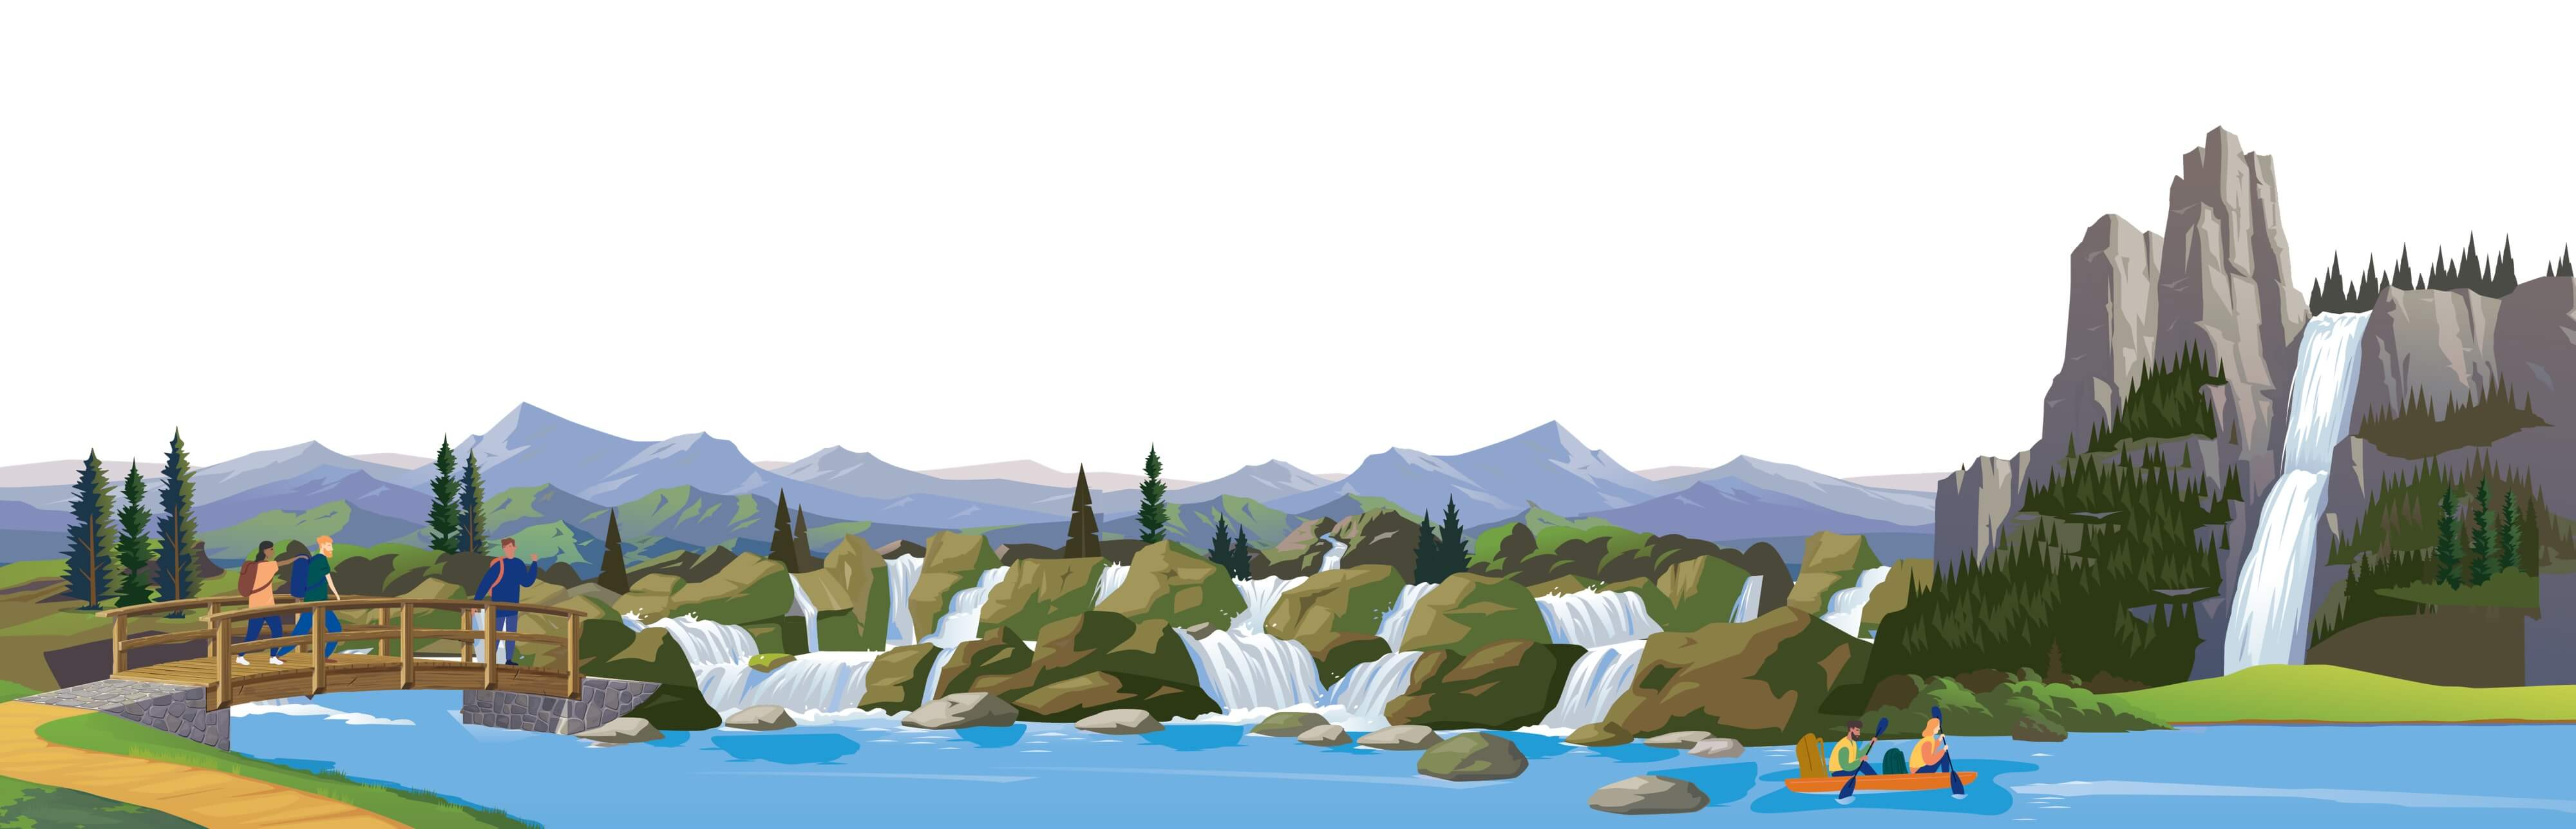 a vector illustration of a lake and scenery